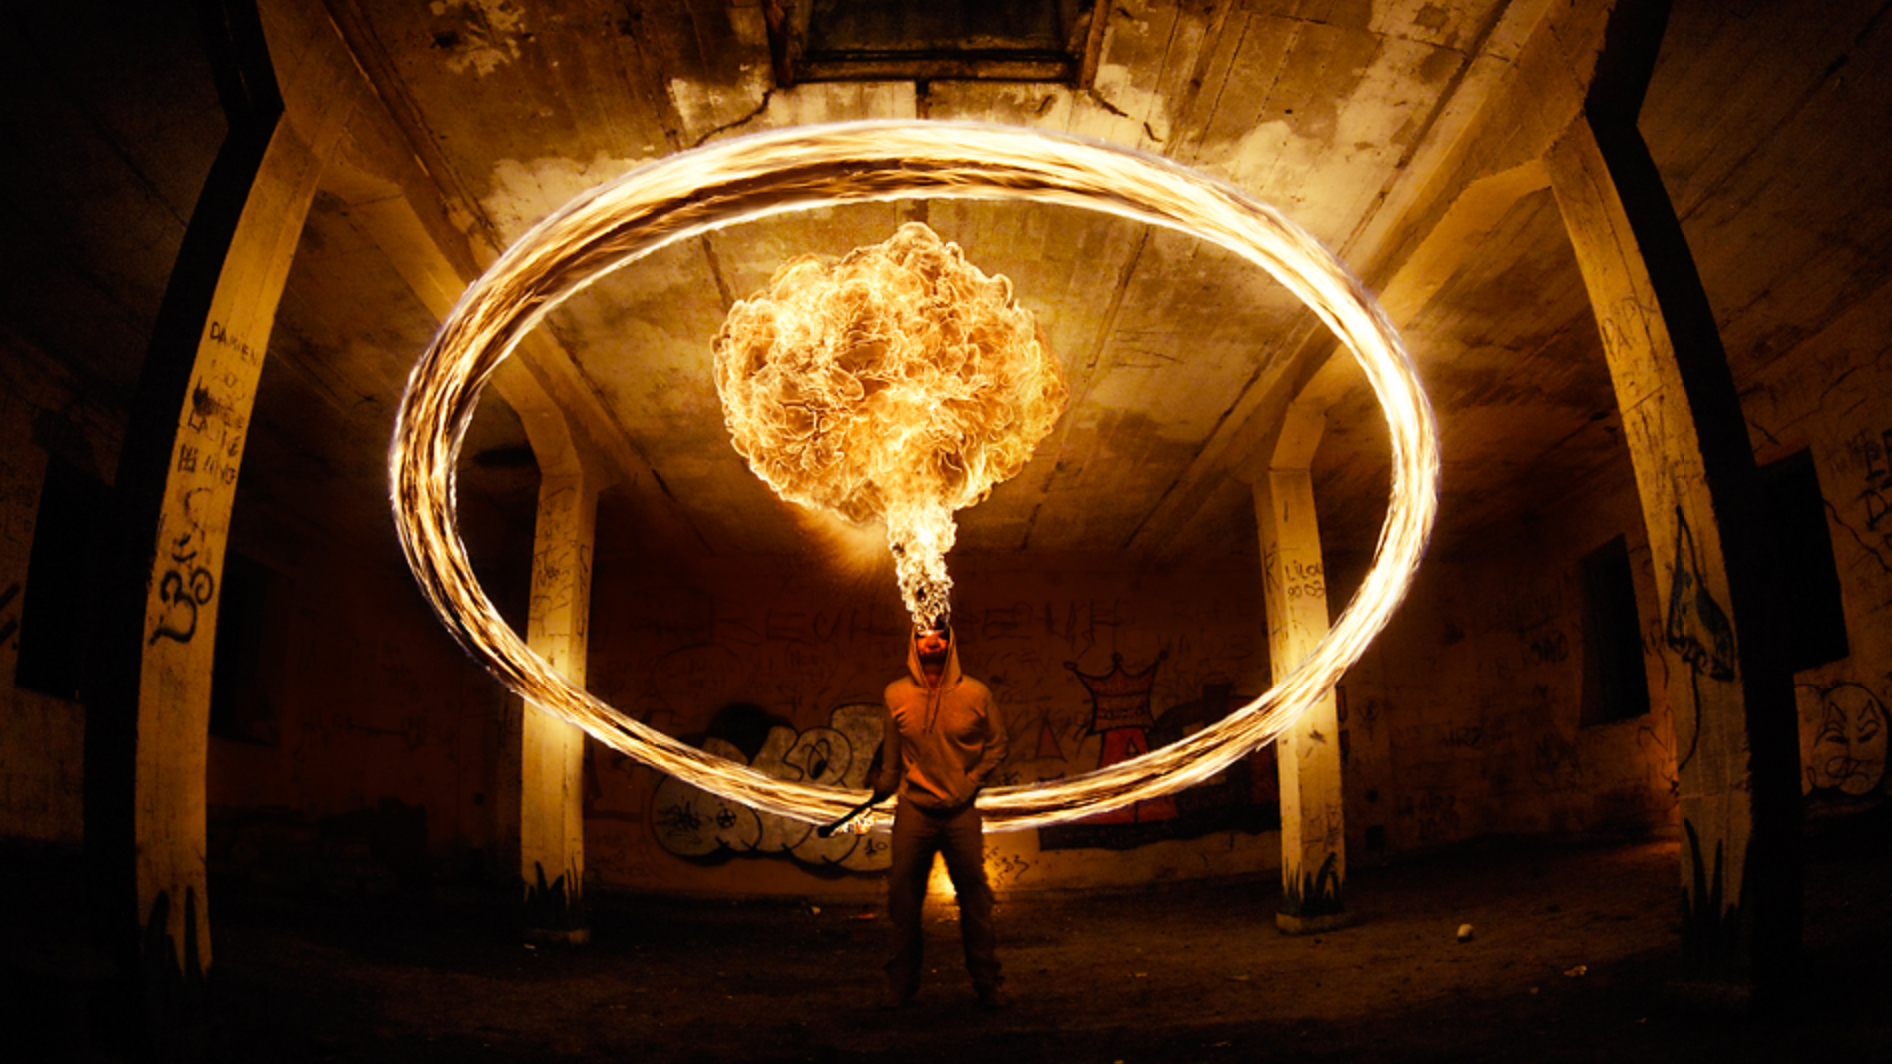 My Life as a World Famous Fire Juggler